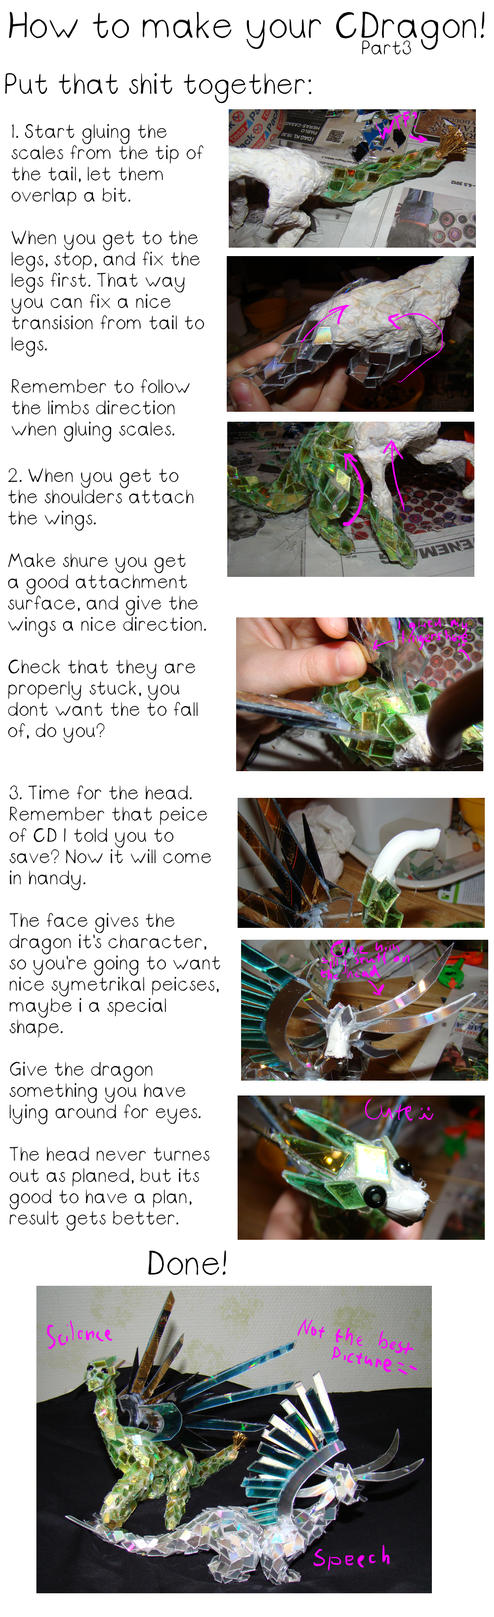 How to make your CDragon part3 by Jedni